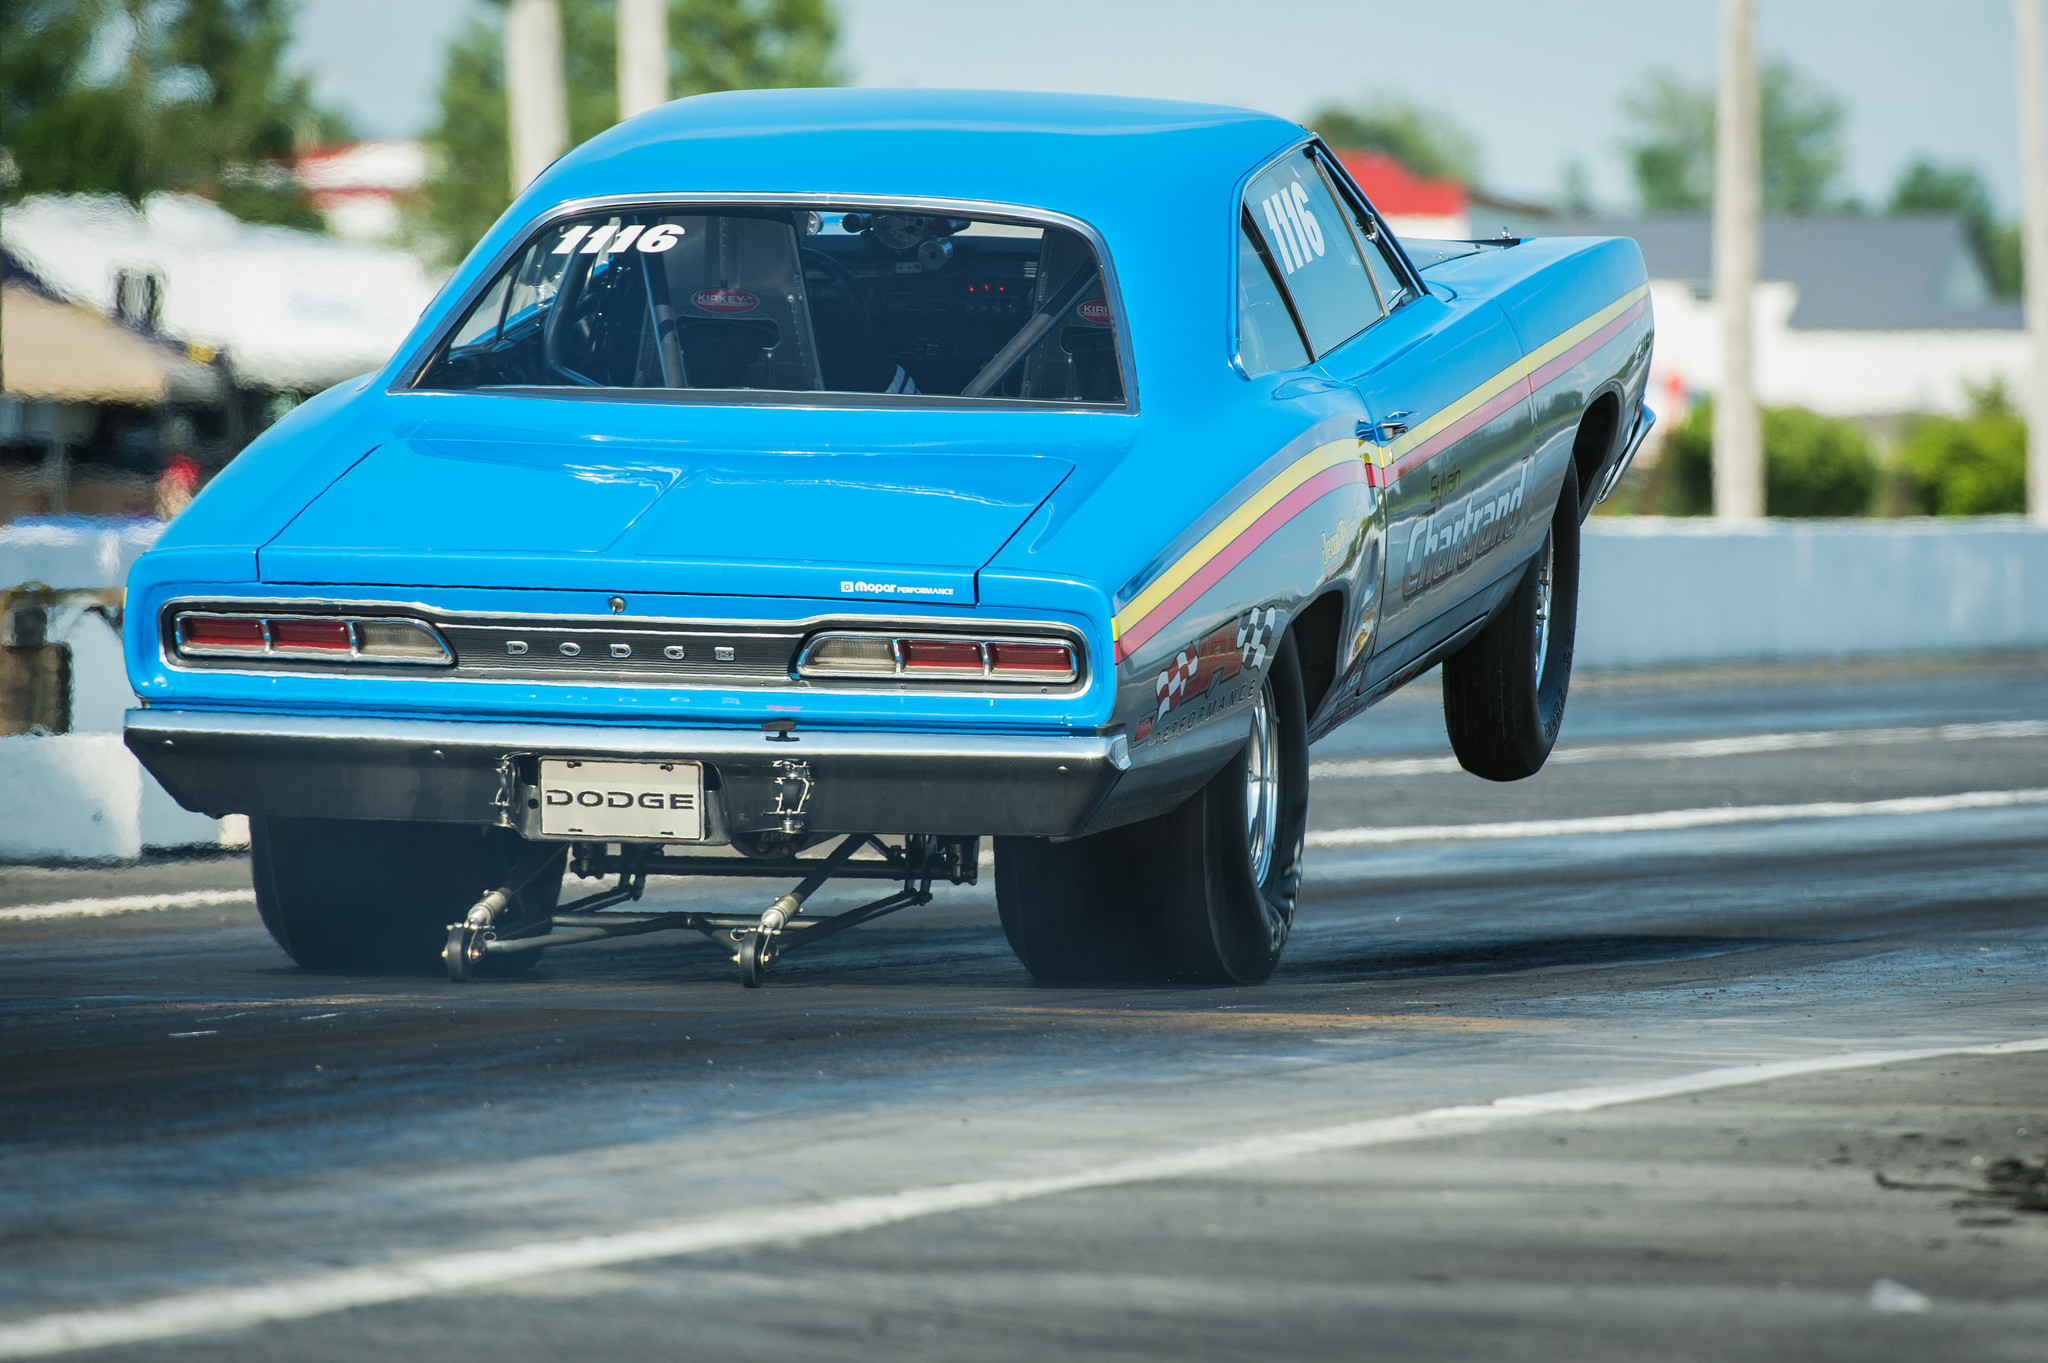 Cool Muscle Cars >> Muscle Car Drag Racing Wallpaper - WallpaperSafari